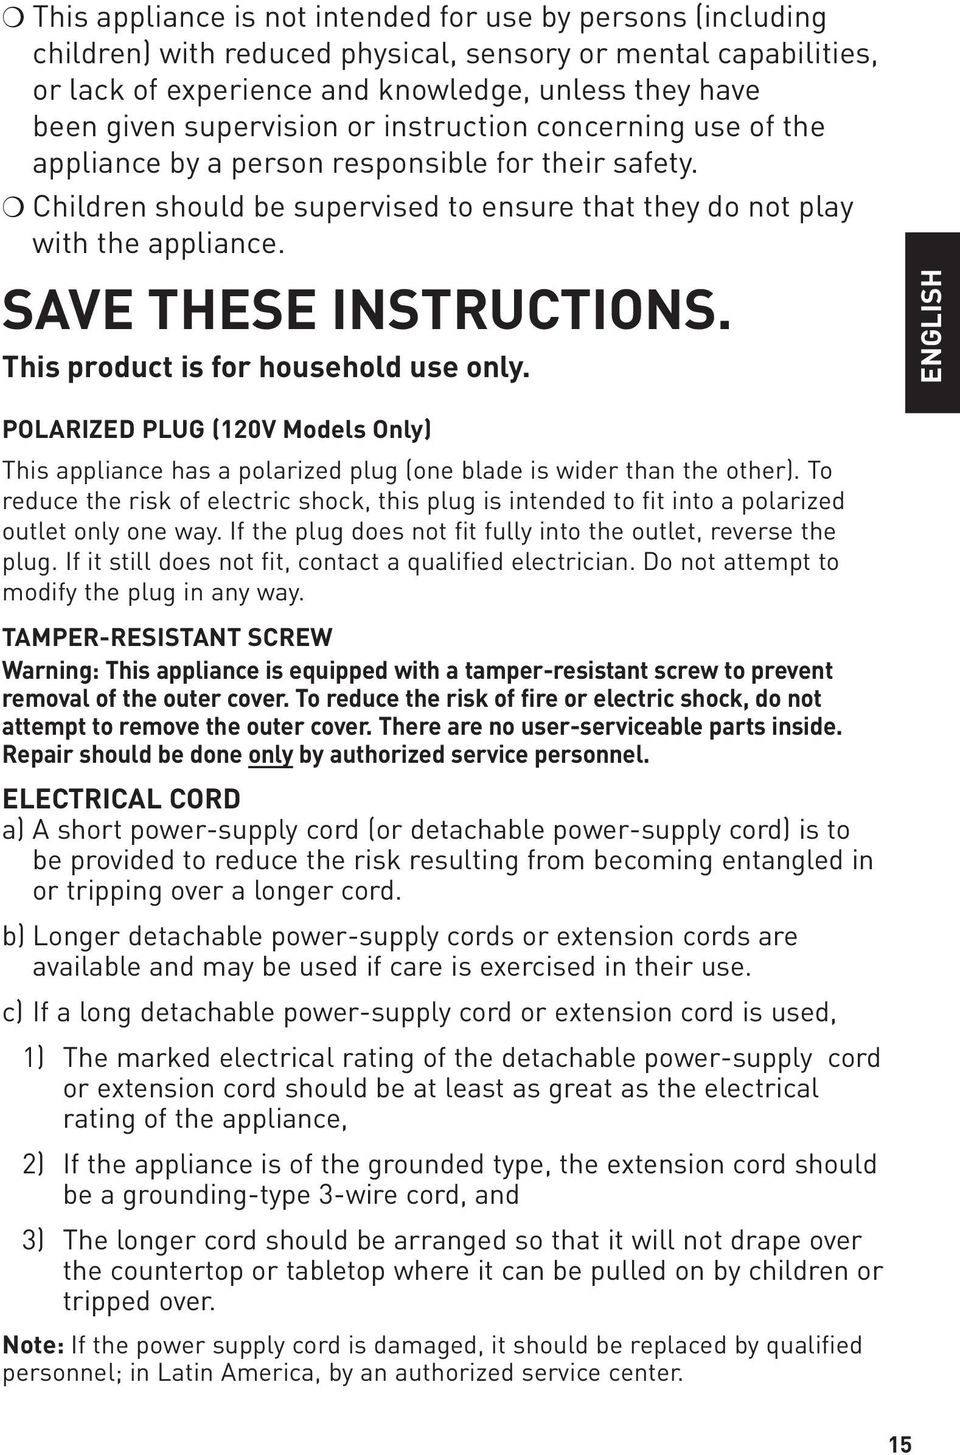 SAVE THESE INSTRUCTIONS. This product is for household use only. ENGLISH POLARIZED PLUG (120V Models Only) This appliance has a polarized plug (one blade is wider than the other).